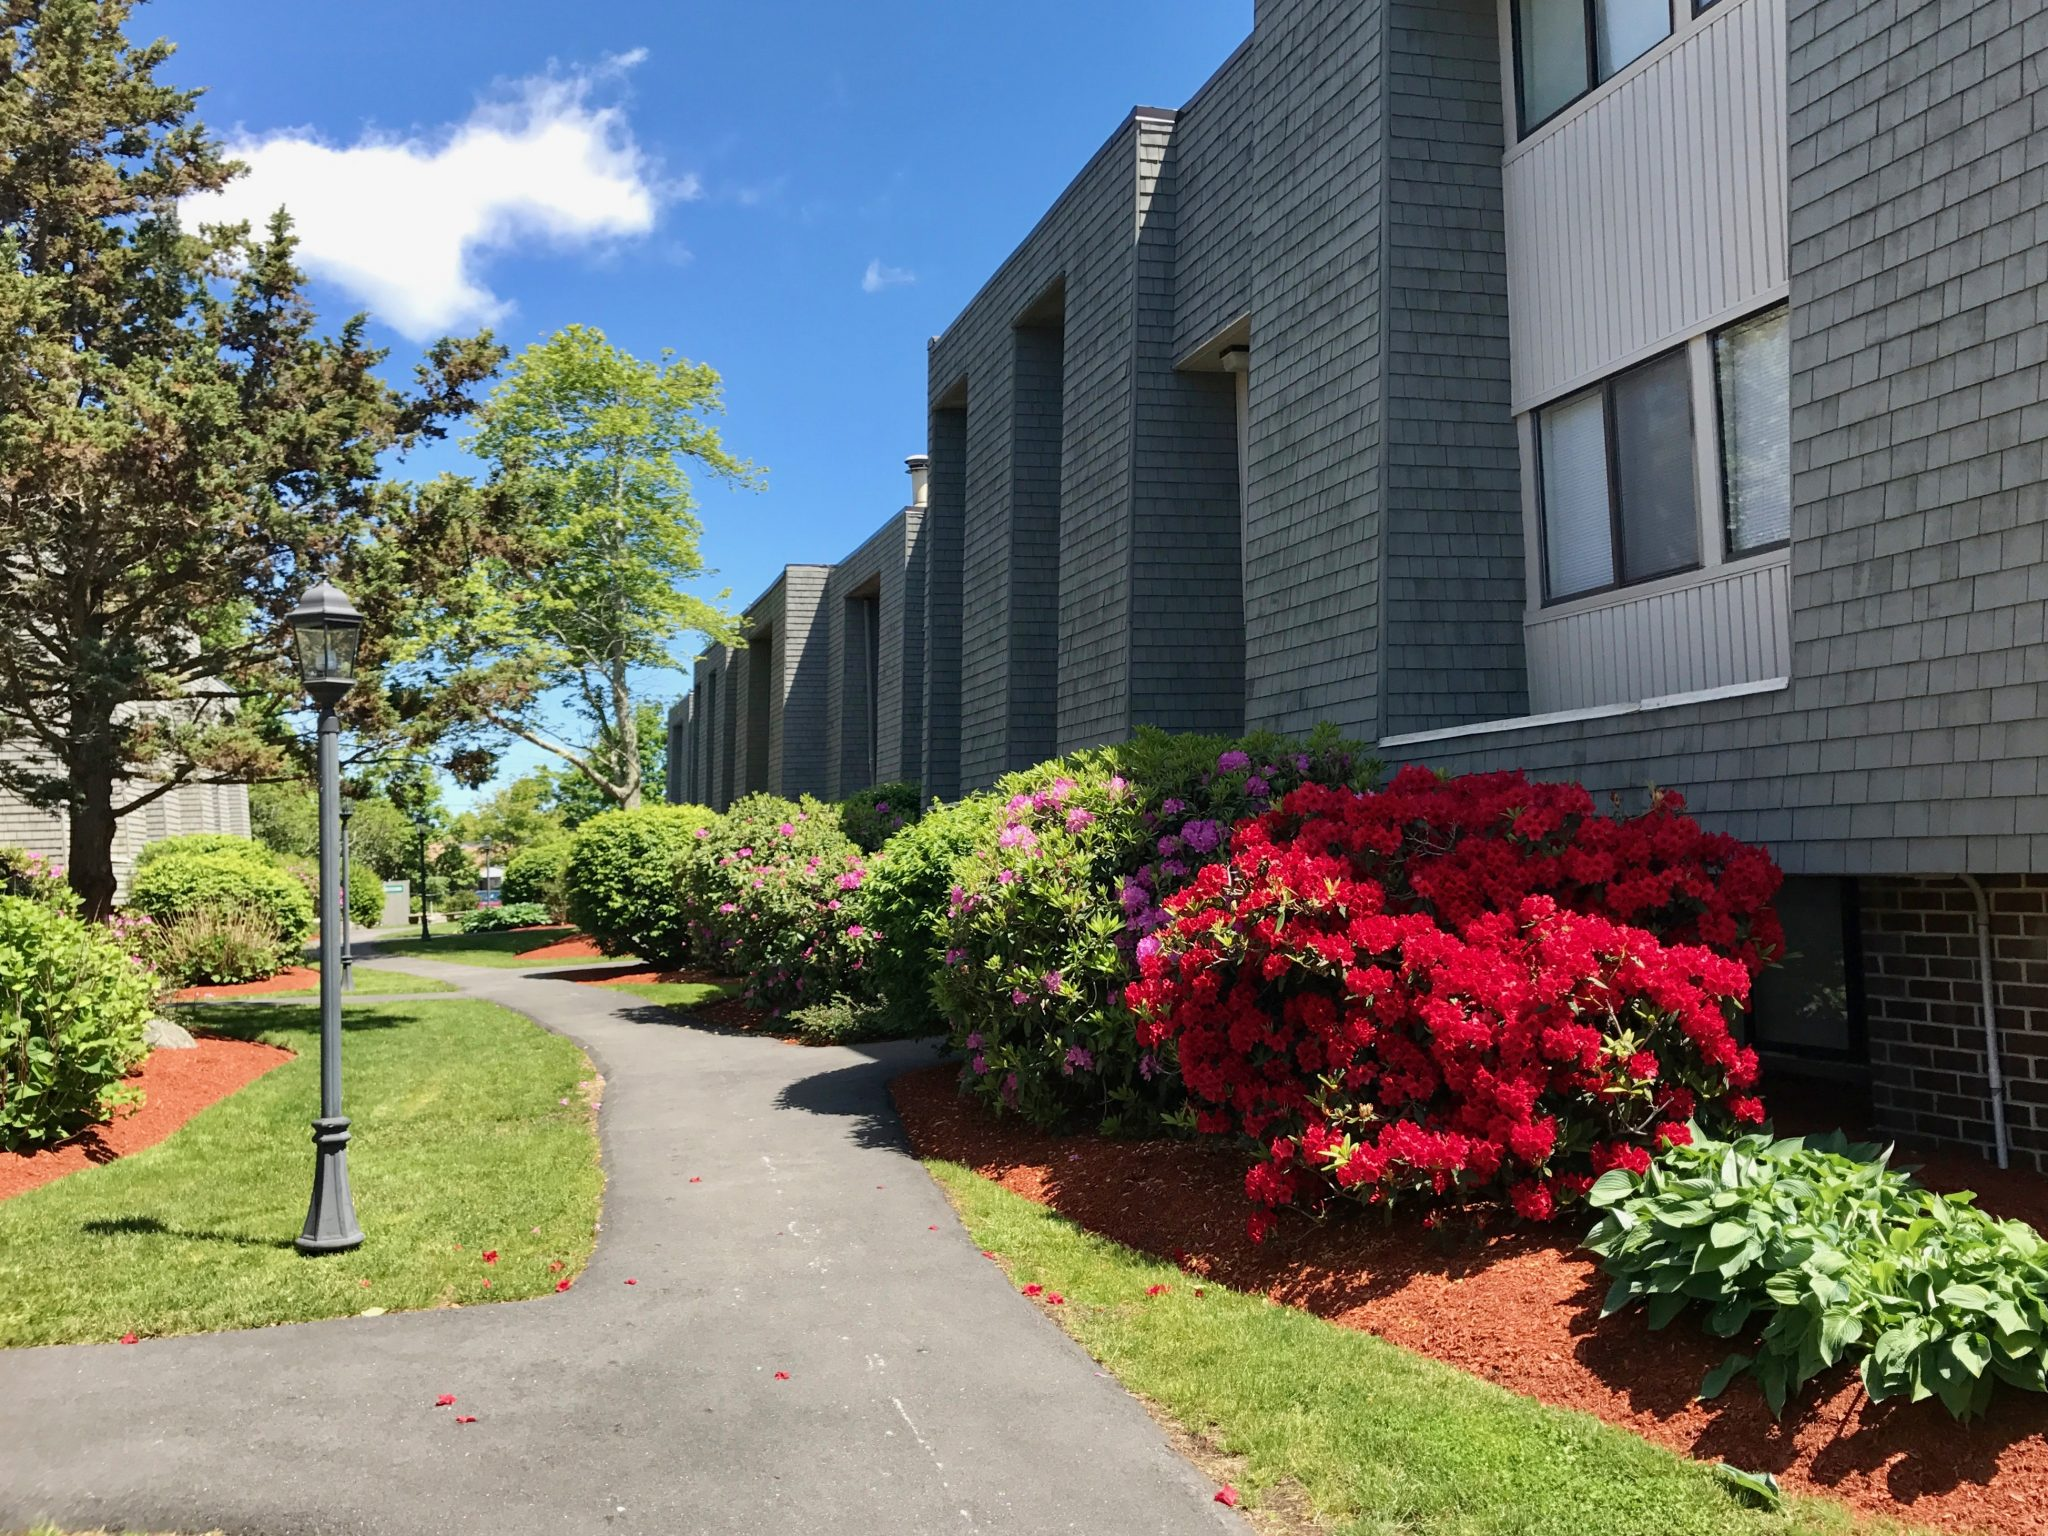 Hyannis: Apartments for Rent in Hyannis, MA - Hajjar Management